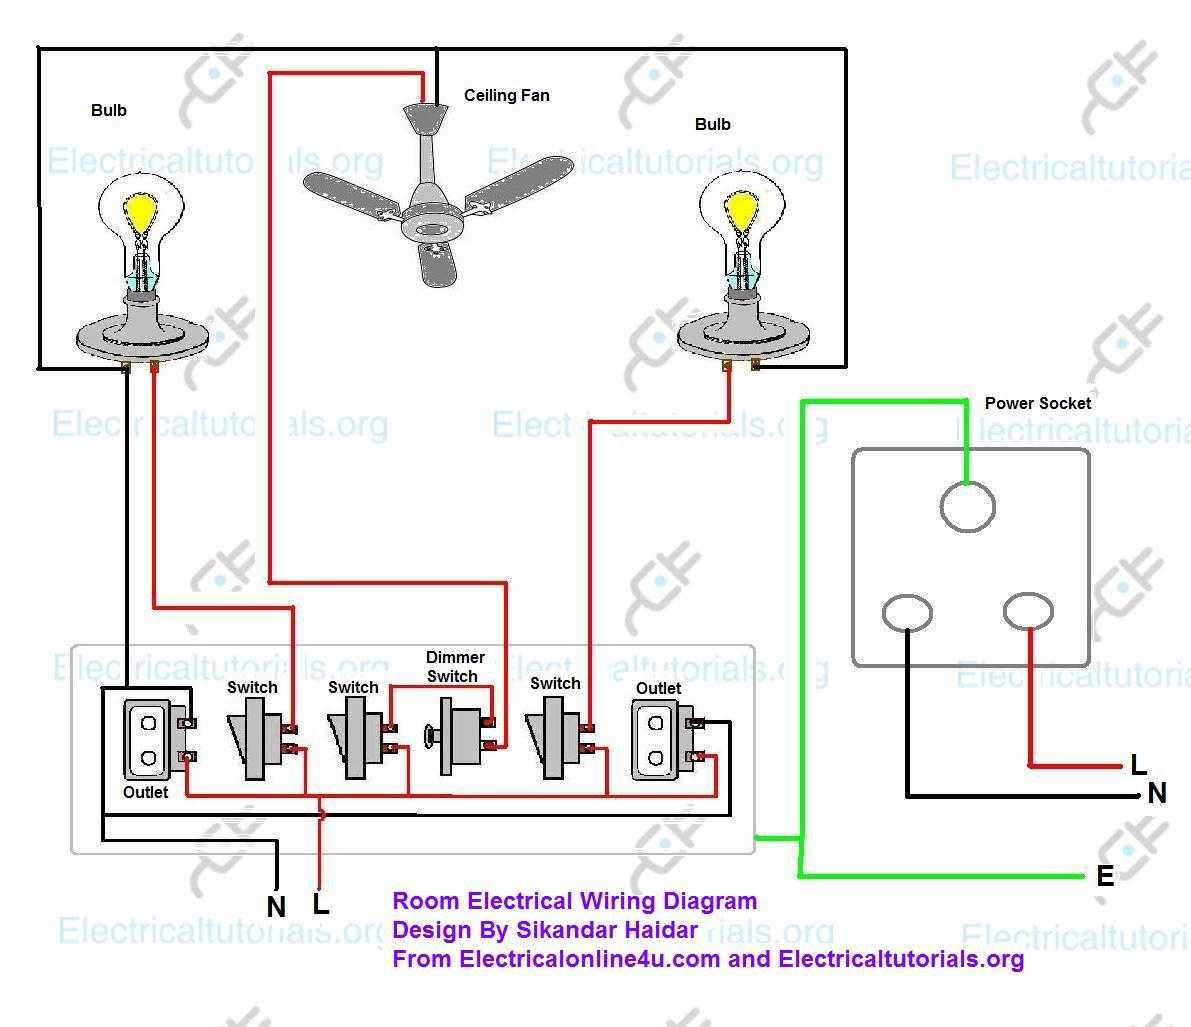 House Wiring Circuit Diagram Pdf Home Design Ideas: Electric Circuit Drawing At GetDrawings.com